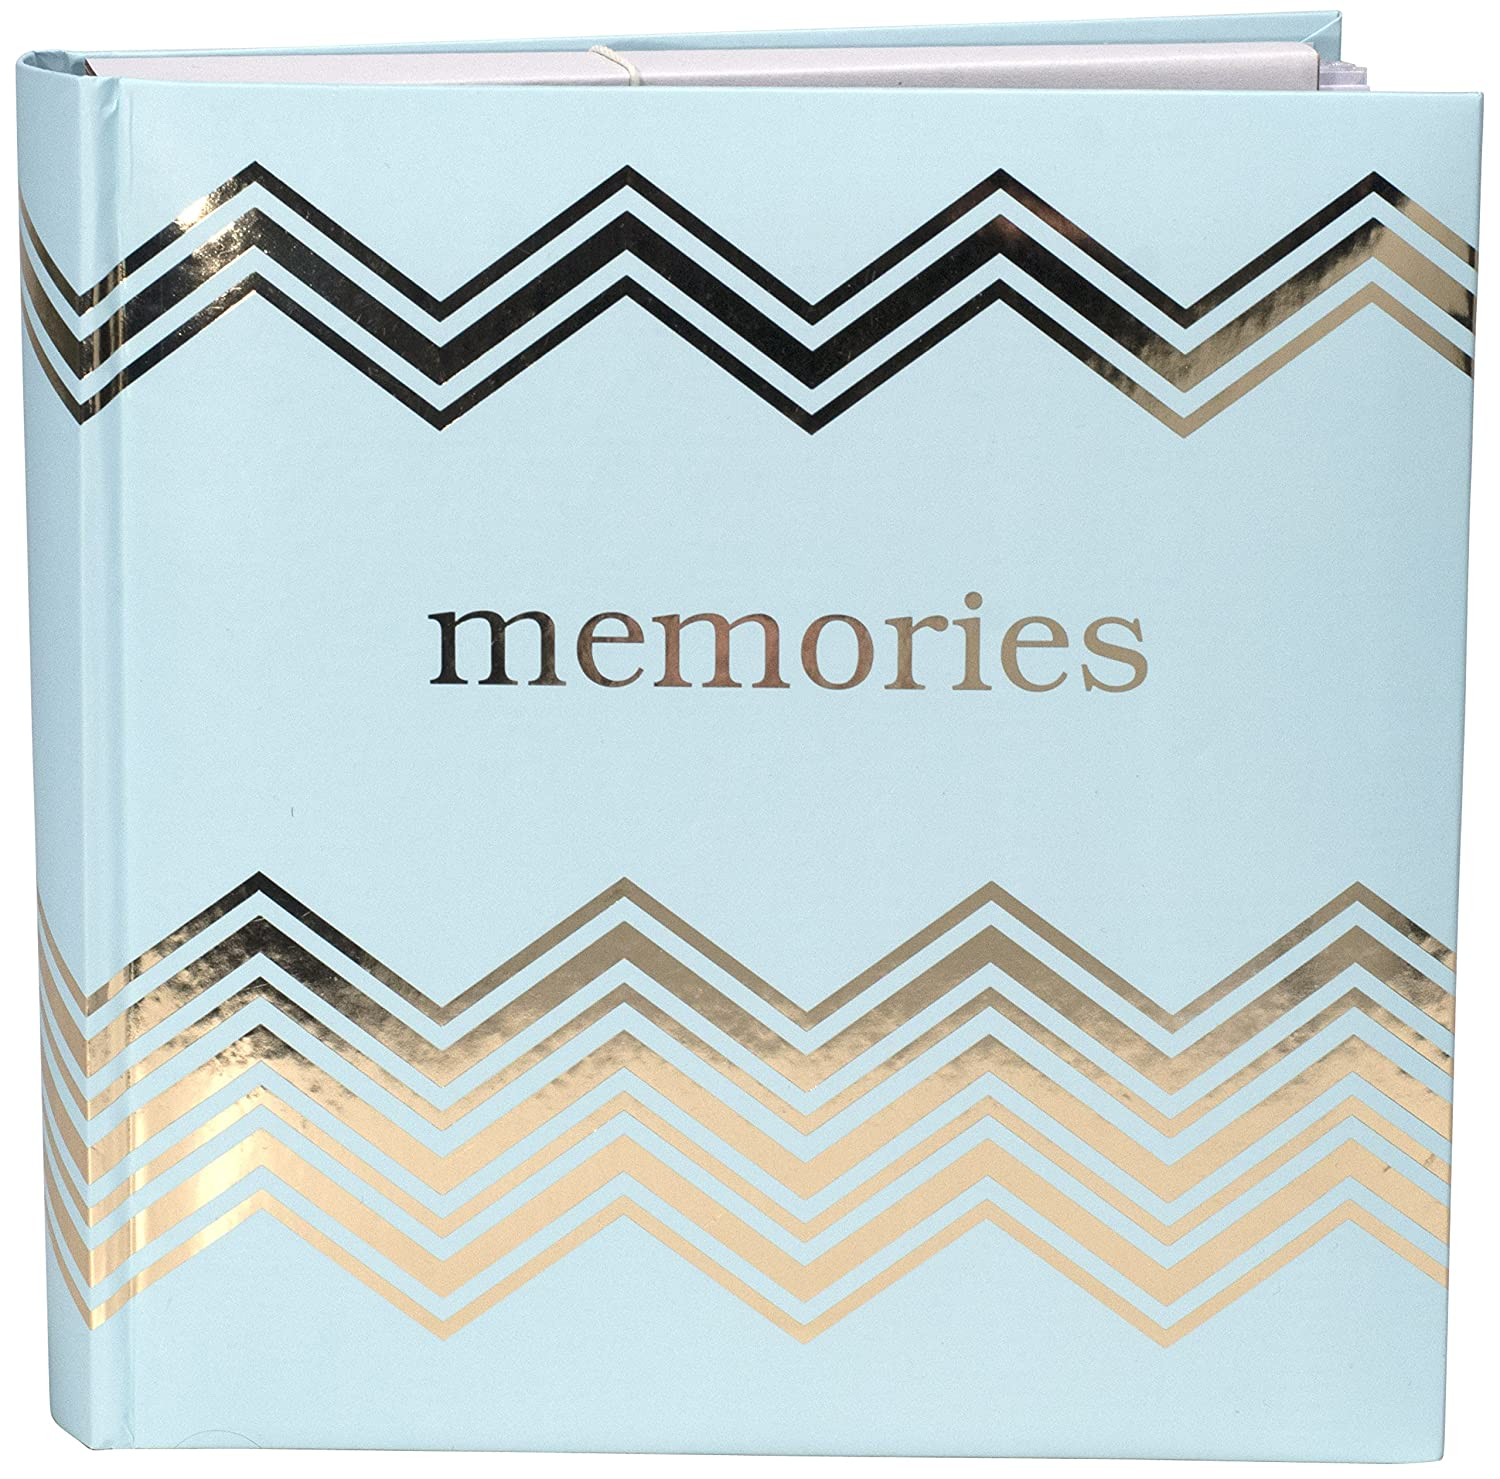 Malden International Designs Sentiments Memories with Memo Photo Opening Cover with Gold Foil Accents Brag Book, 2-Up, 160-4x6, White Malden Industrial Designs 7090-26